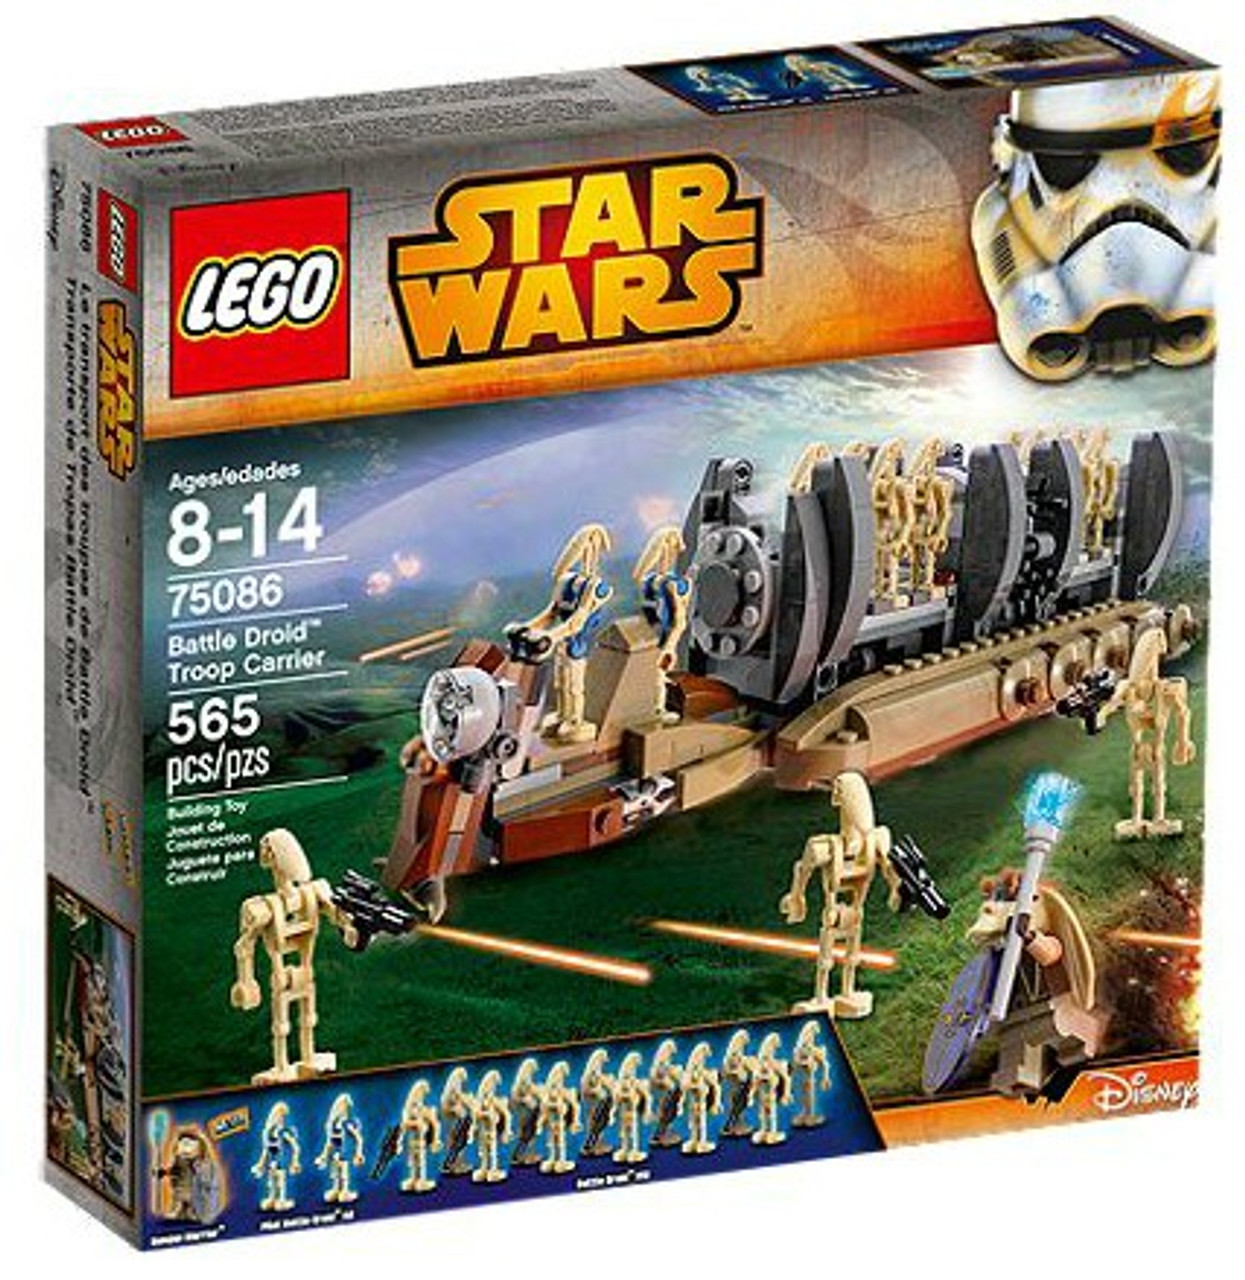 LEGO Star Wars The Phantom Menace Battle Droid Troop Carrier Exclusive Set #75086